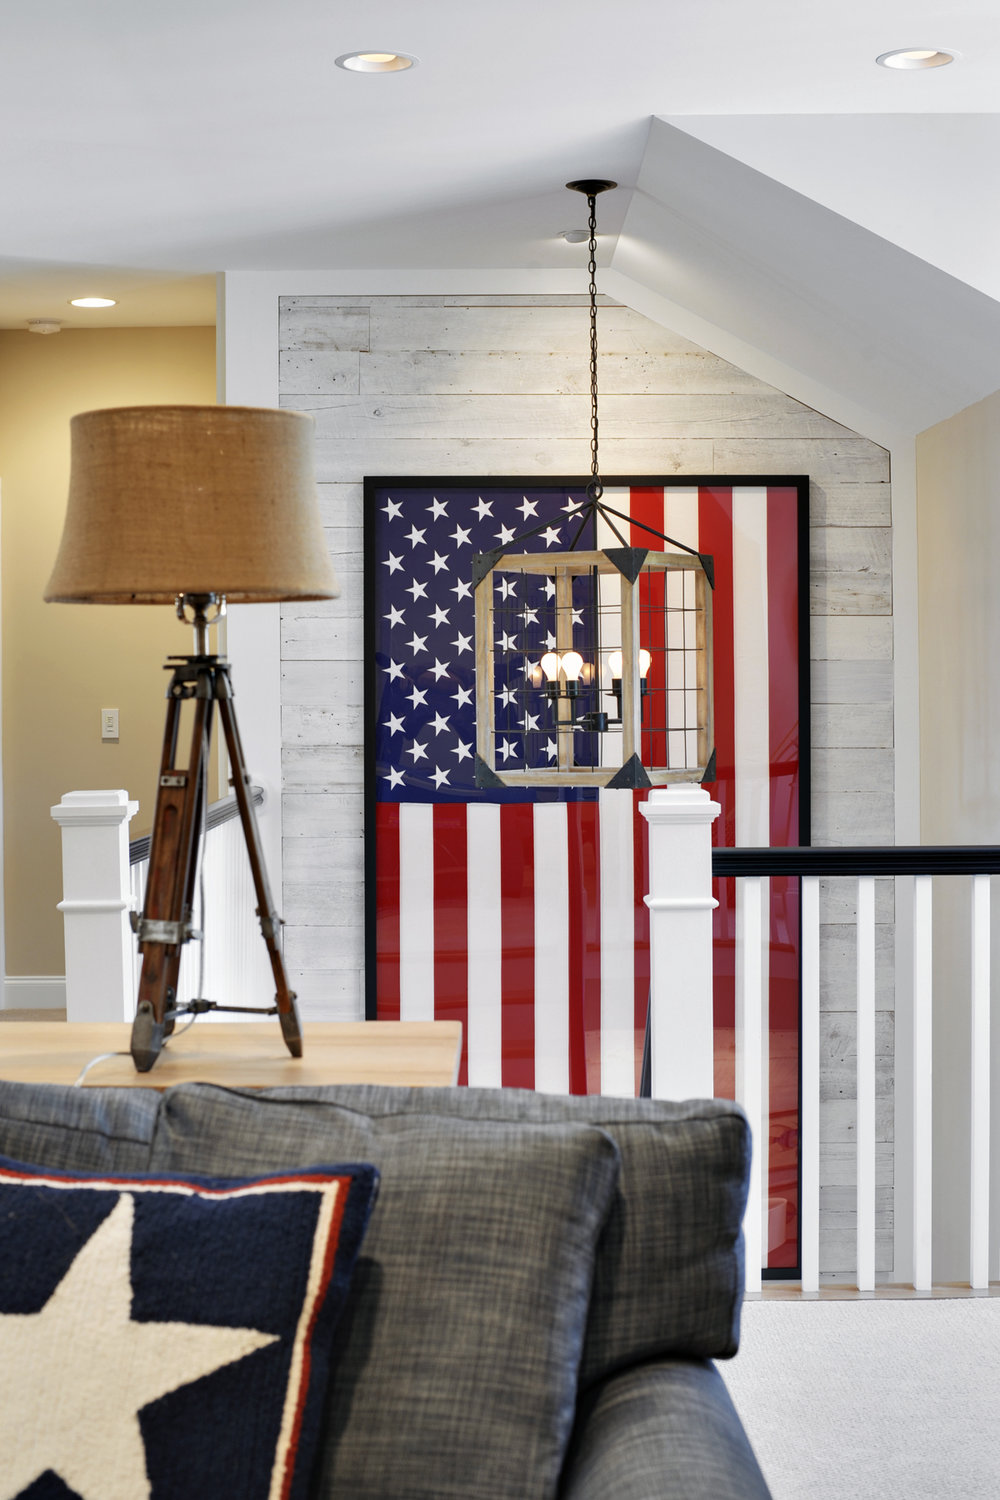 Using American flags as decor. A black frame gives this flag a modern feel against the whitewashed barn wood wall.